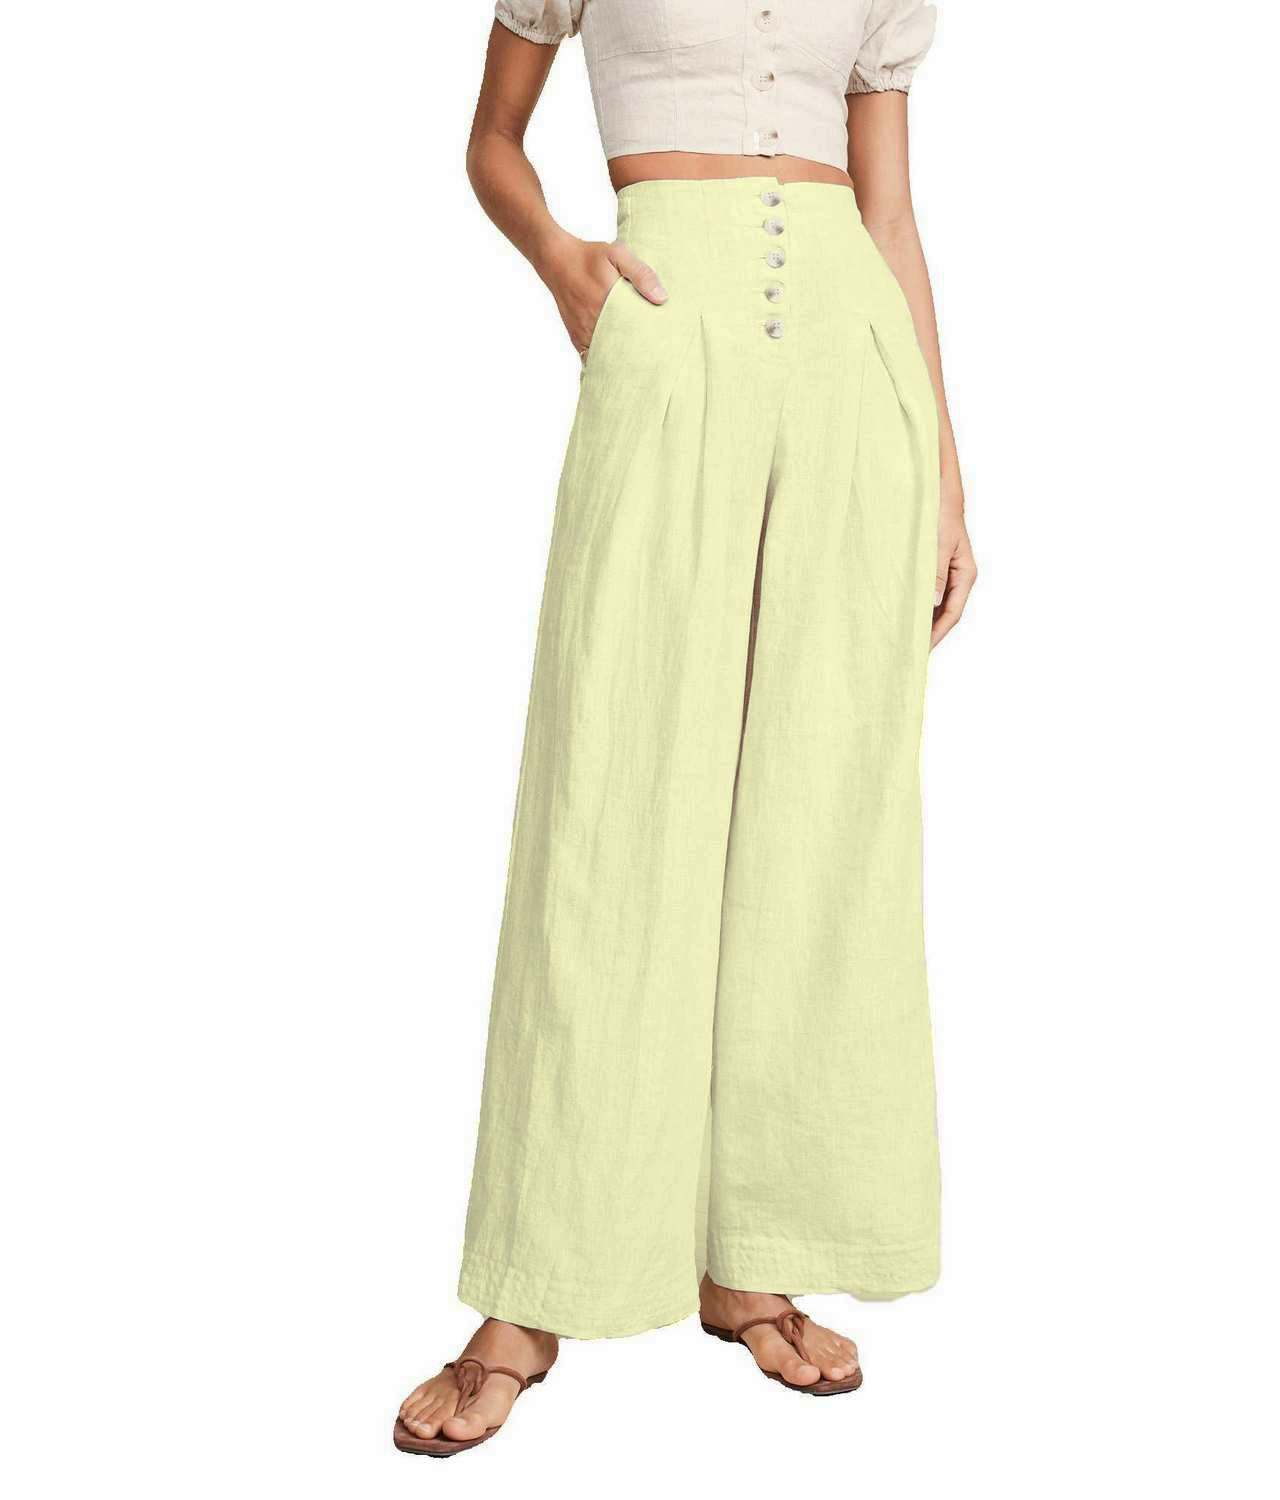 Regular Fit Bootcut Trousers in Cream